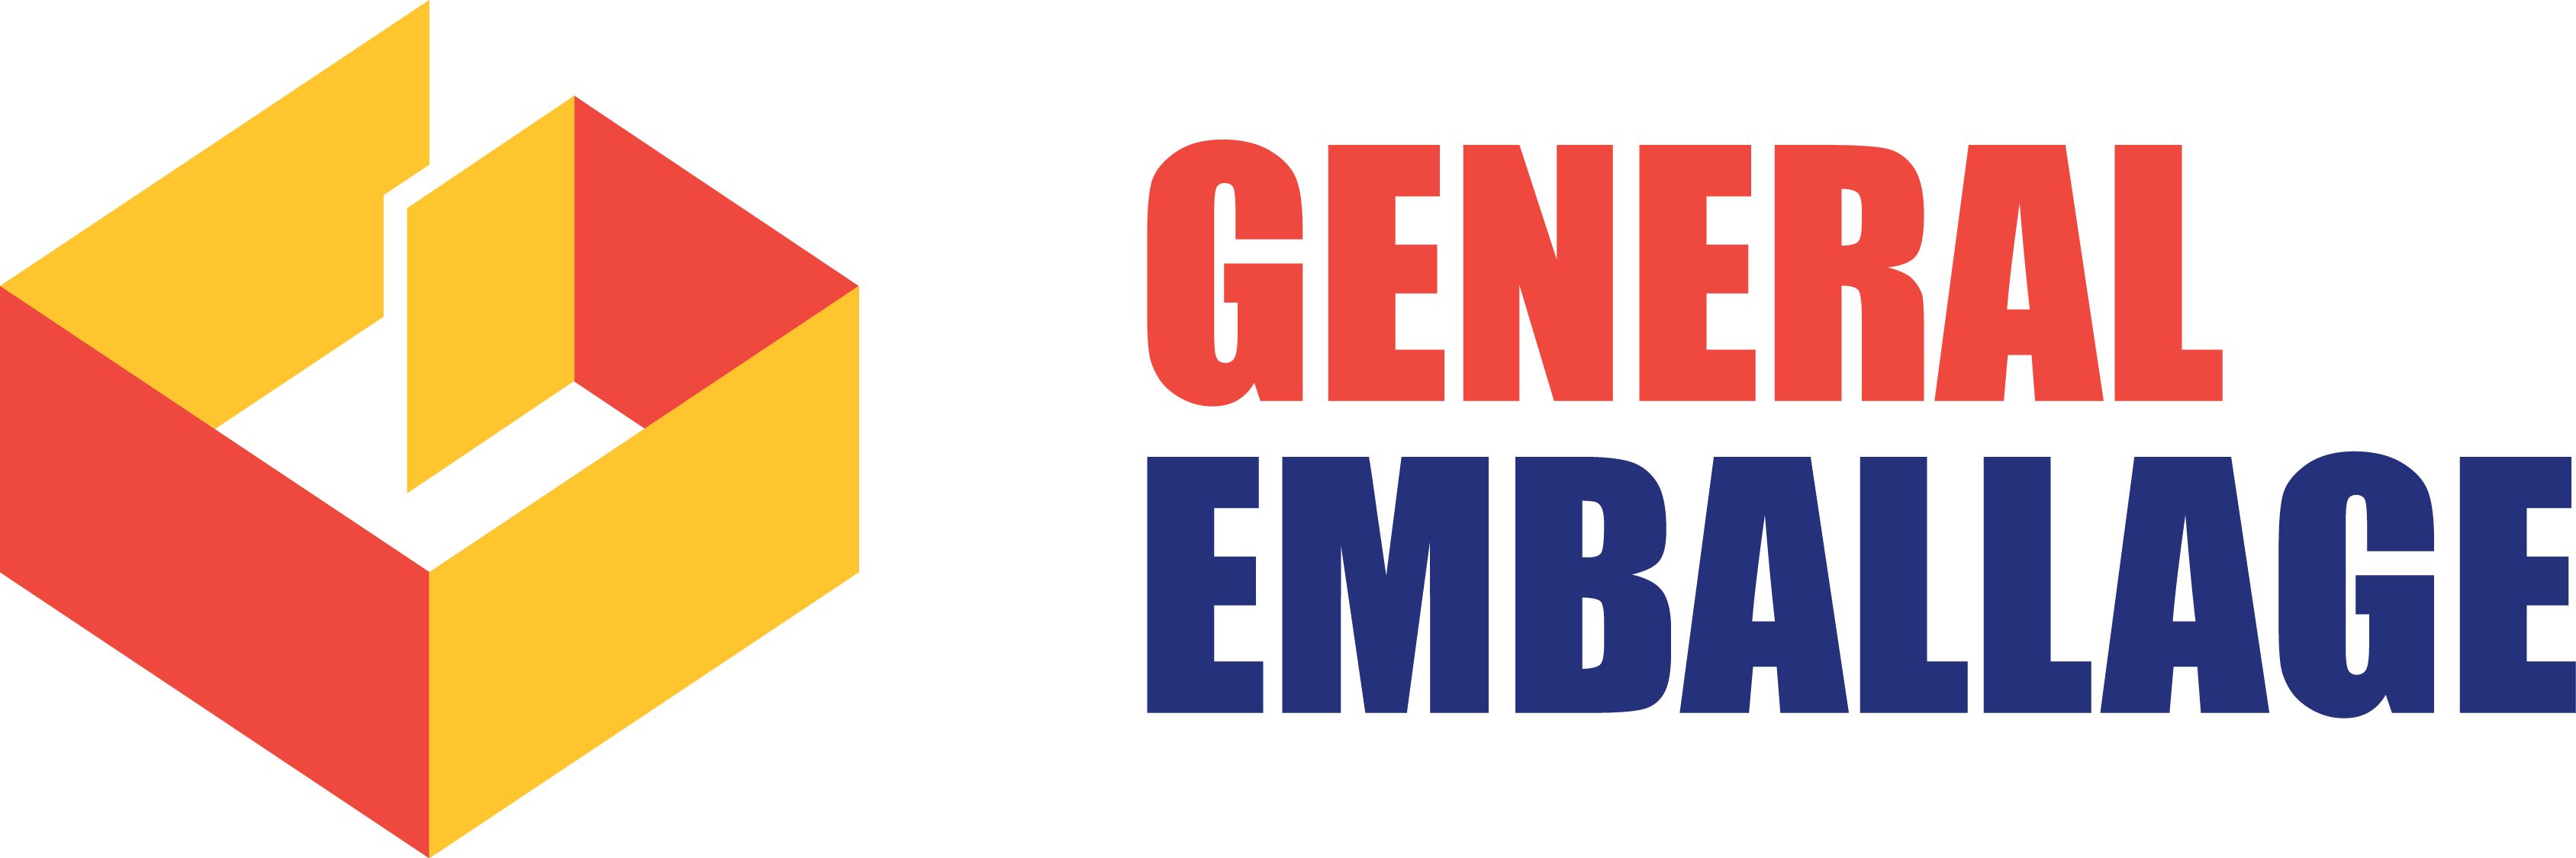 general emballage